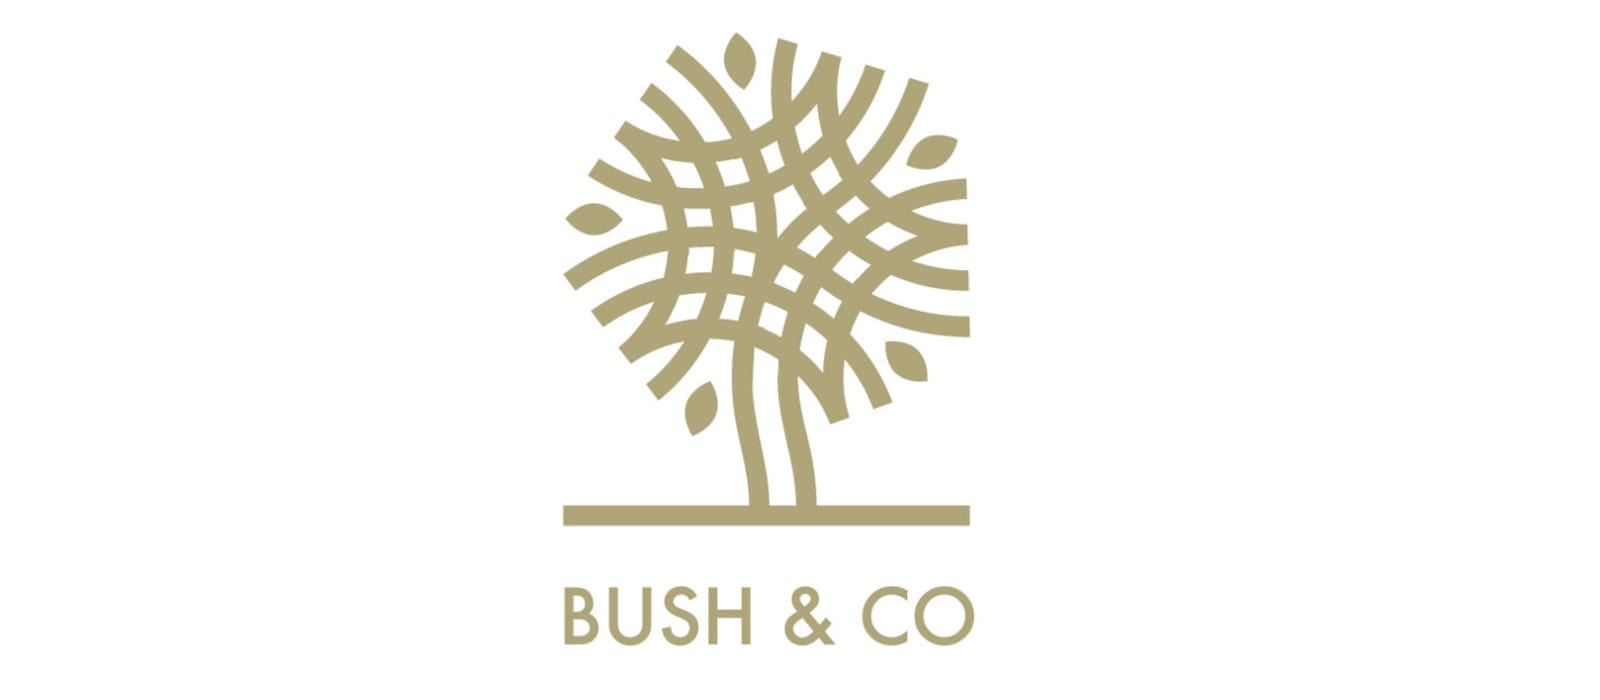 Stoke Mandeville Spinal Research & Bush & Co Announce 2020 Partnership!